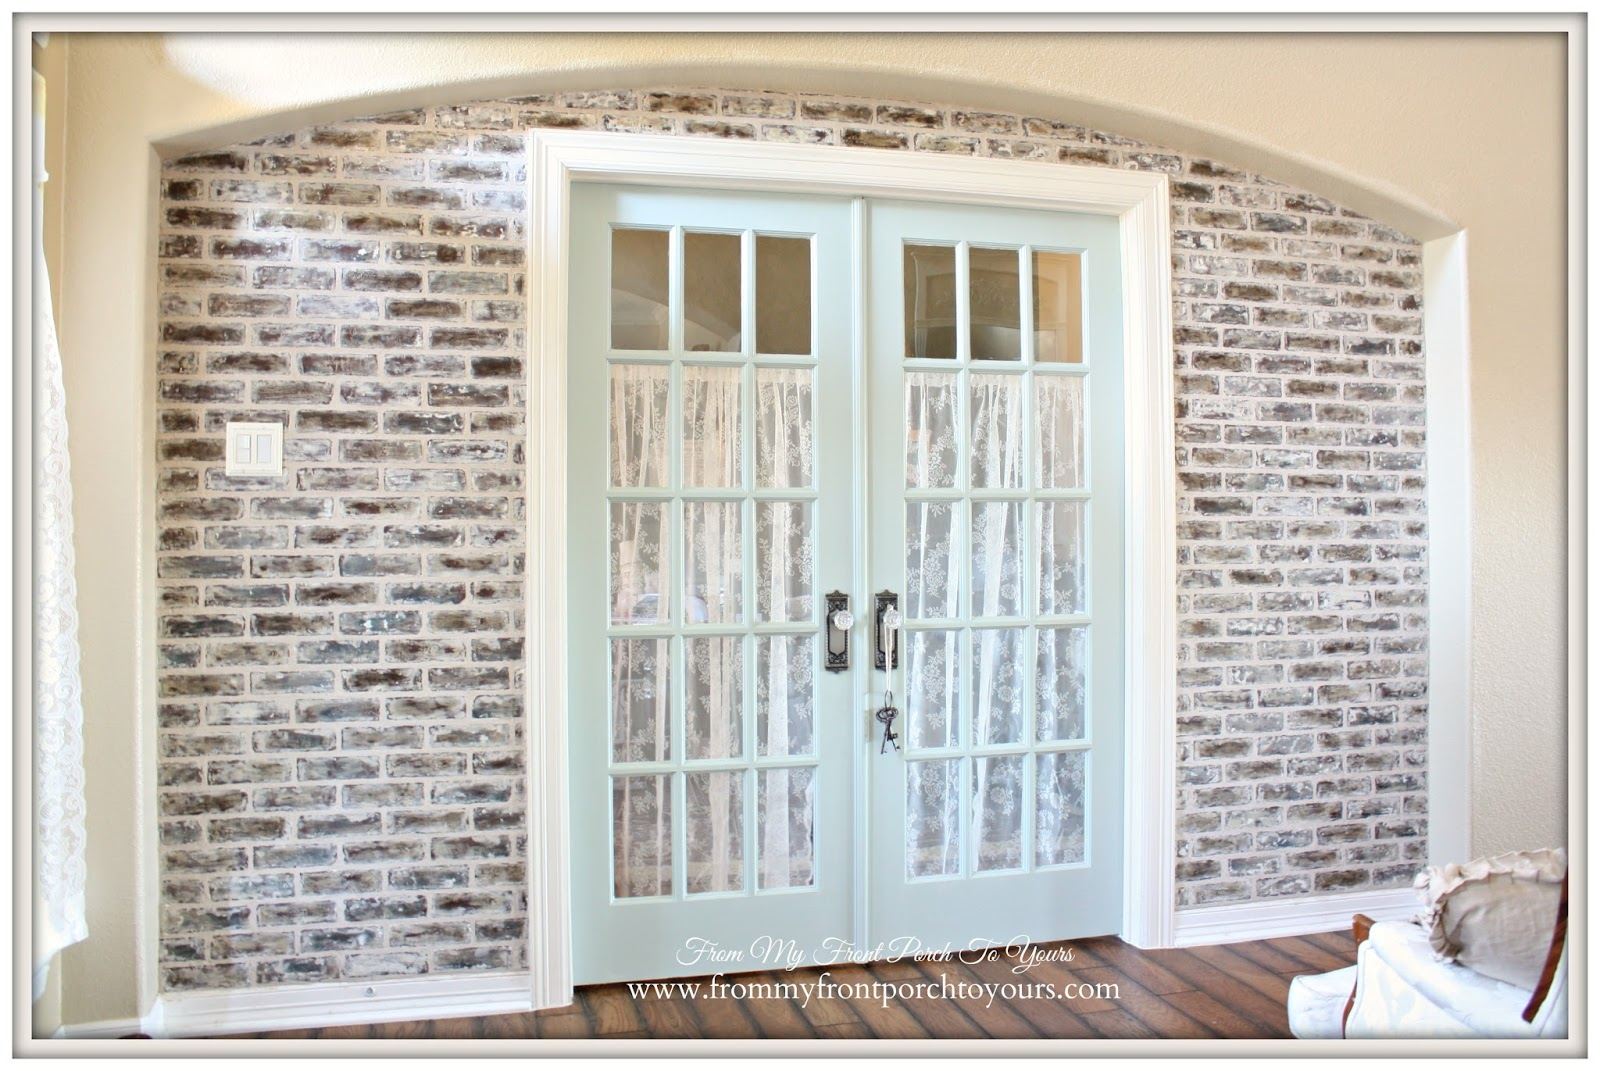 From My Front Porch To Yours: DIY Faux Brick Wall Tutorial Using ...